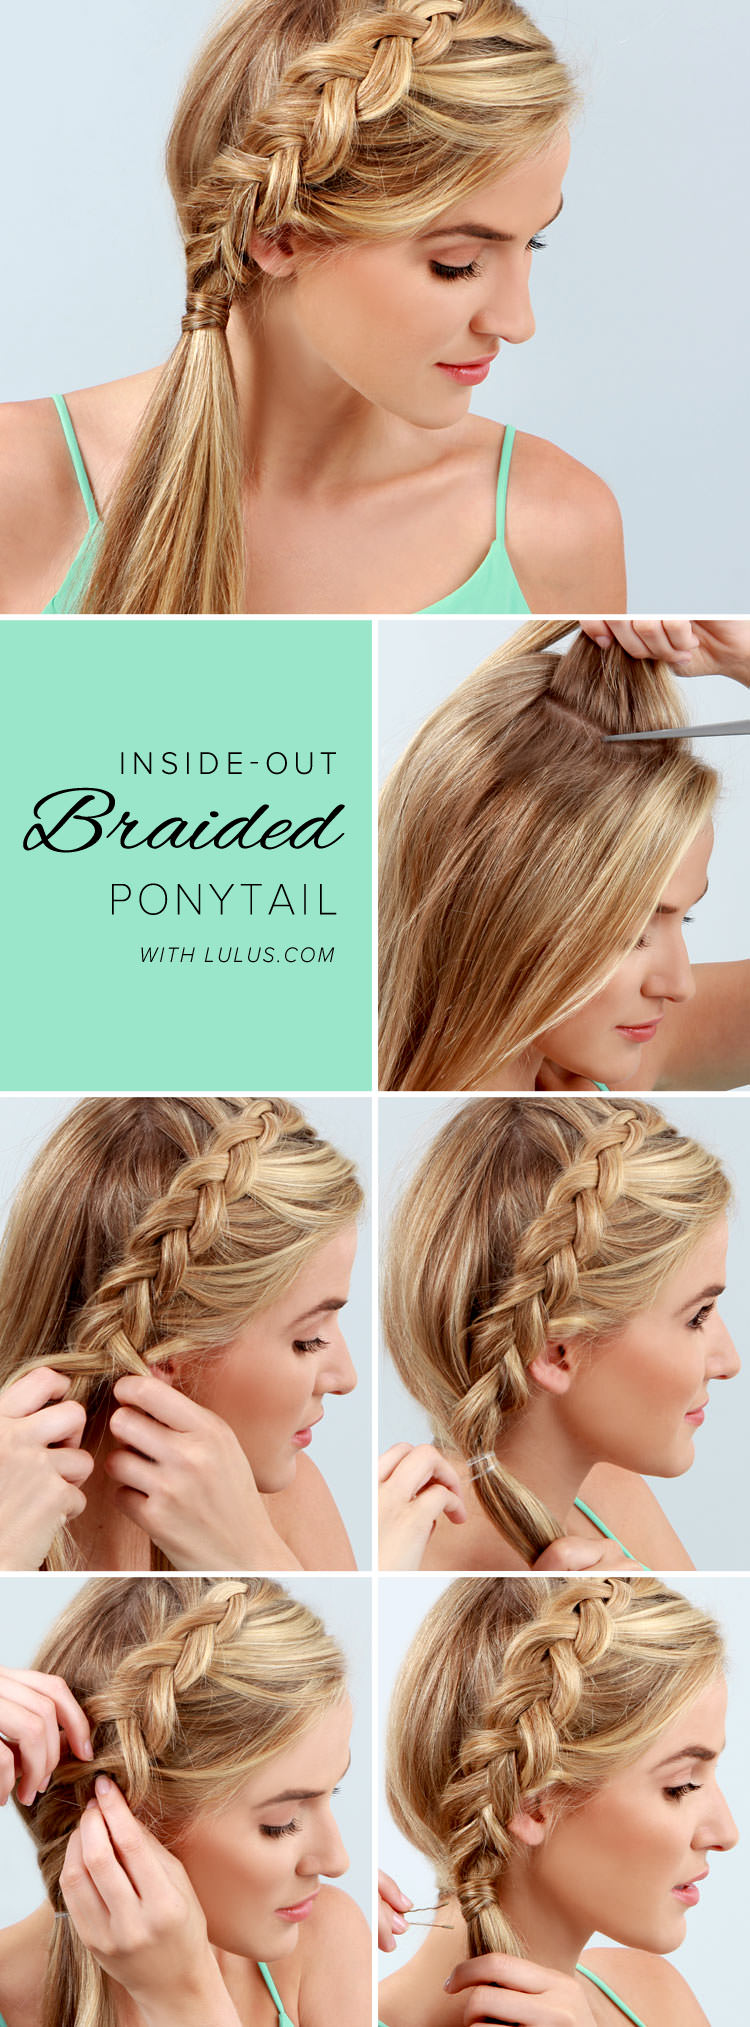 EXTENDED PONYTAIL